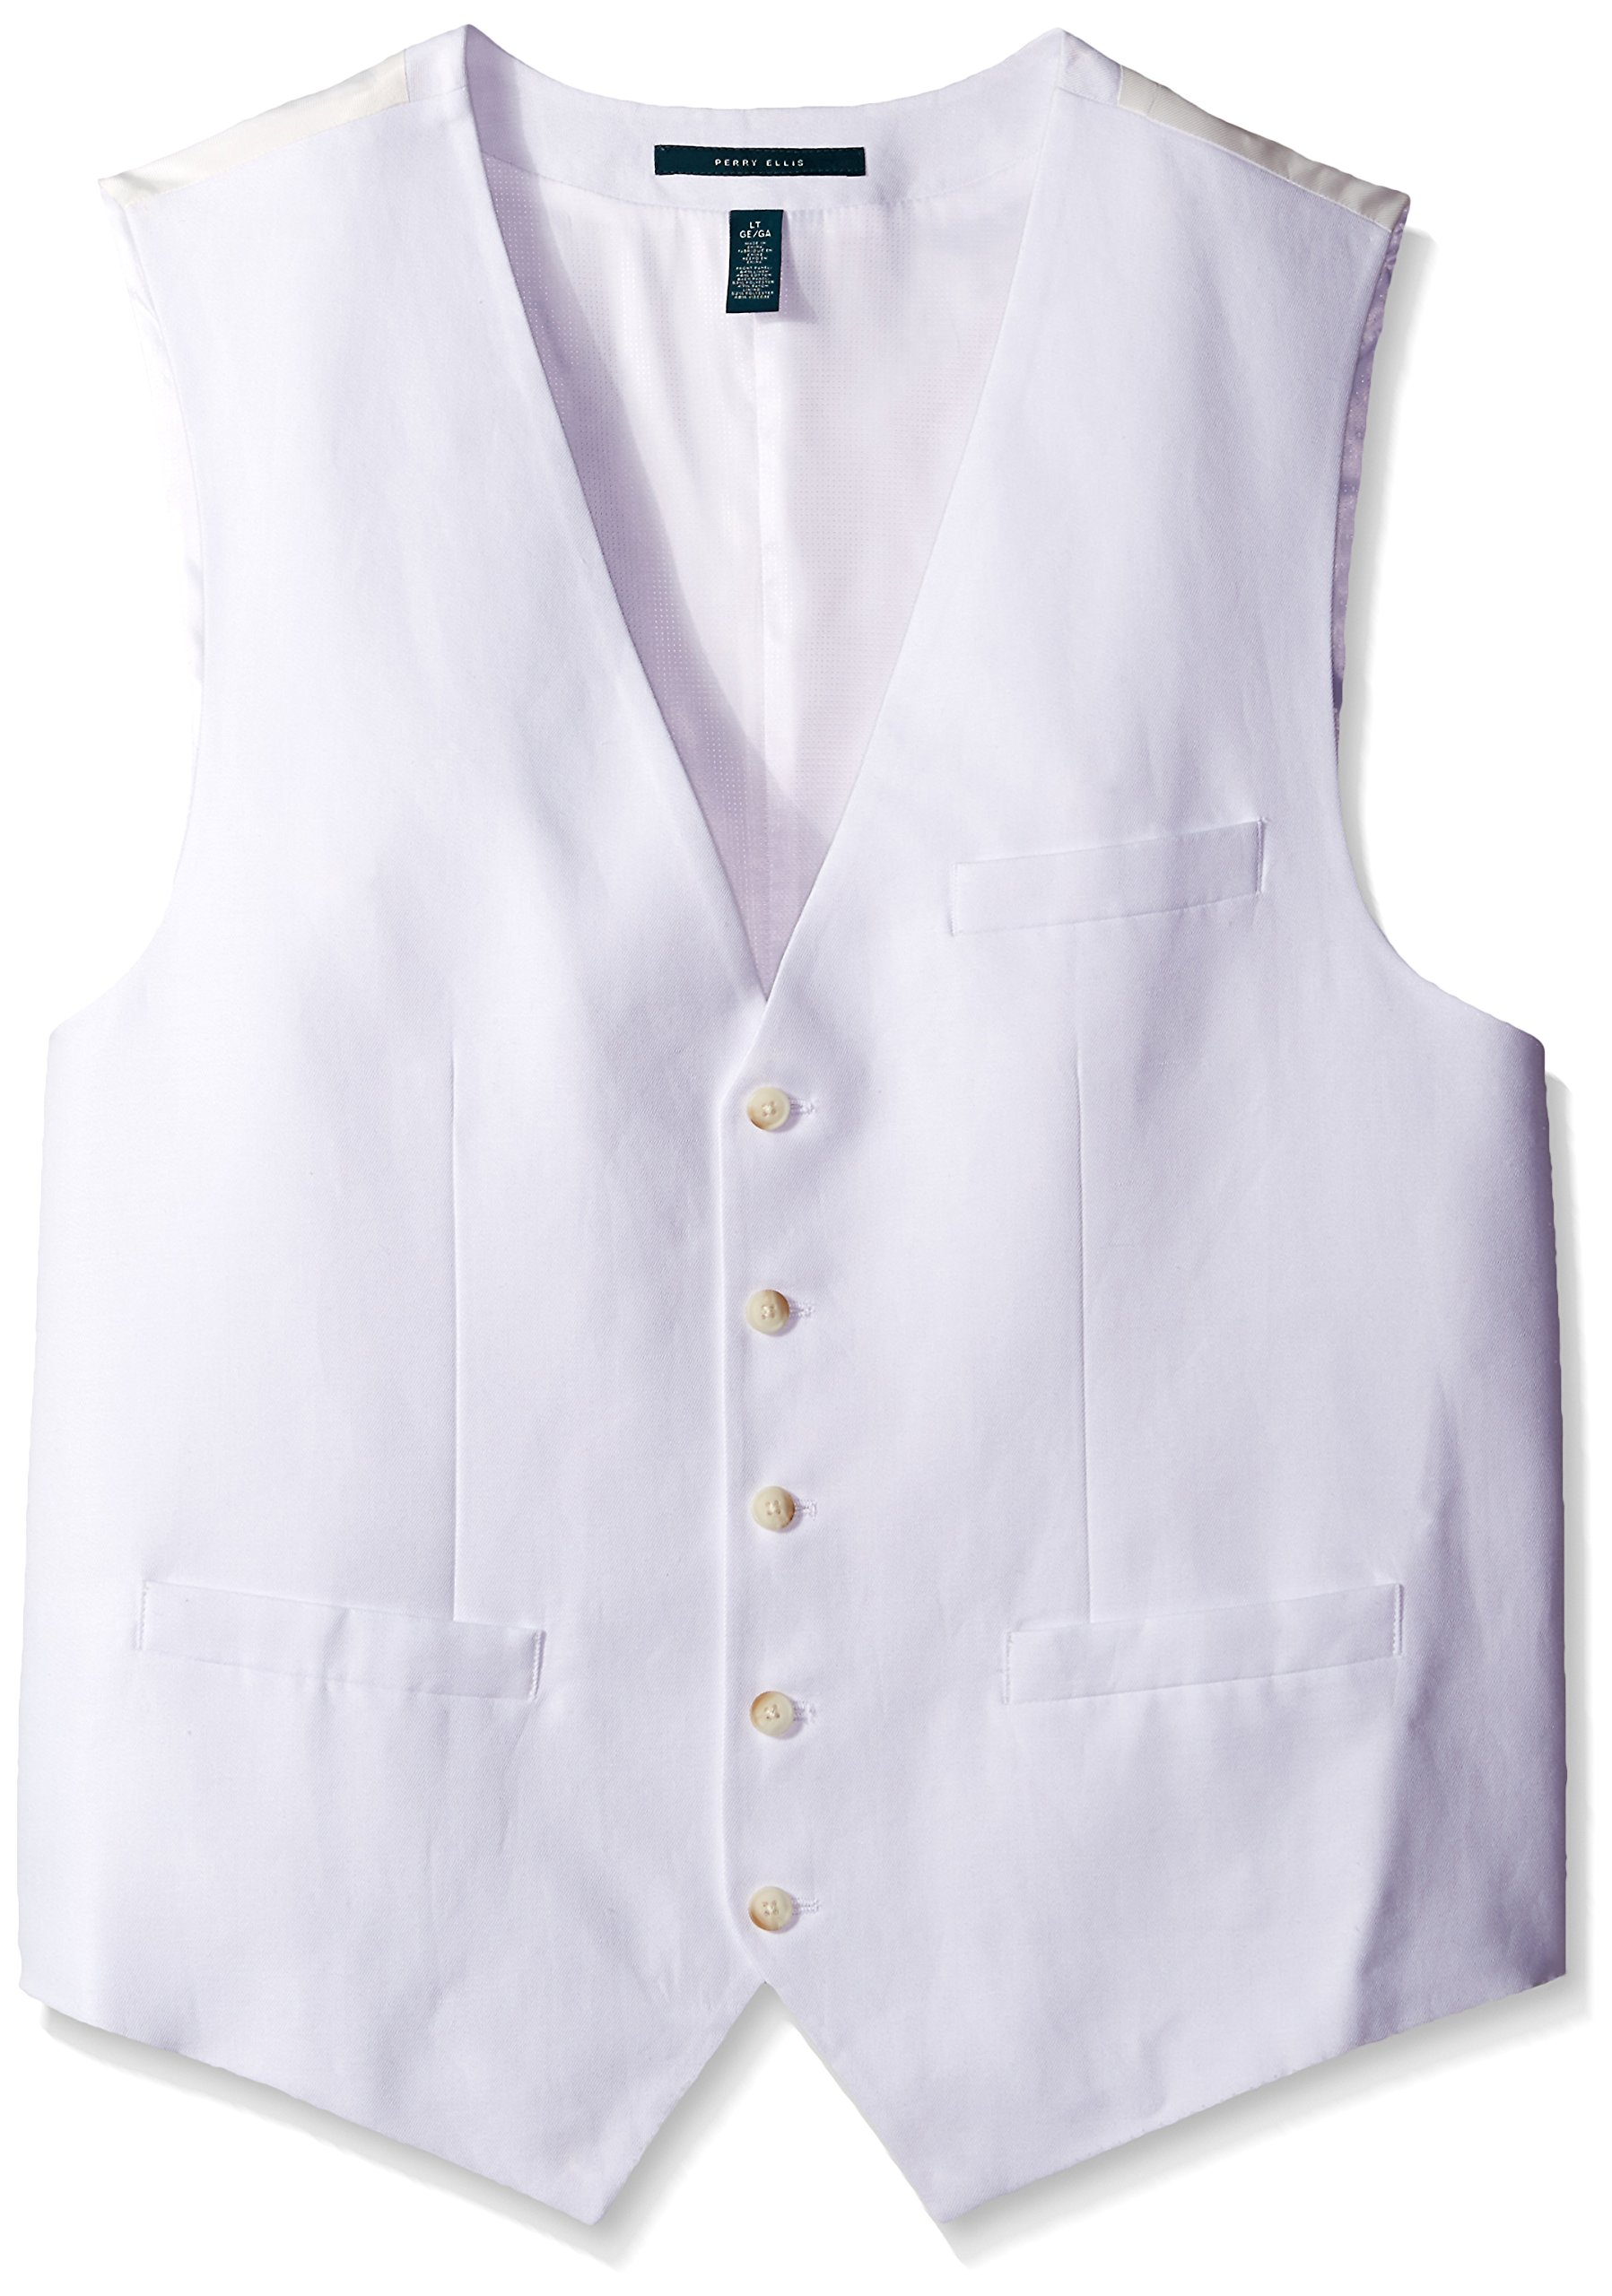 Perry Ellis Men's Big-Tall Linen Suit Vest, Bright White, X-Large/Tall by Perry Ellis